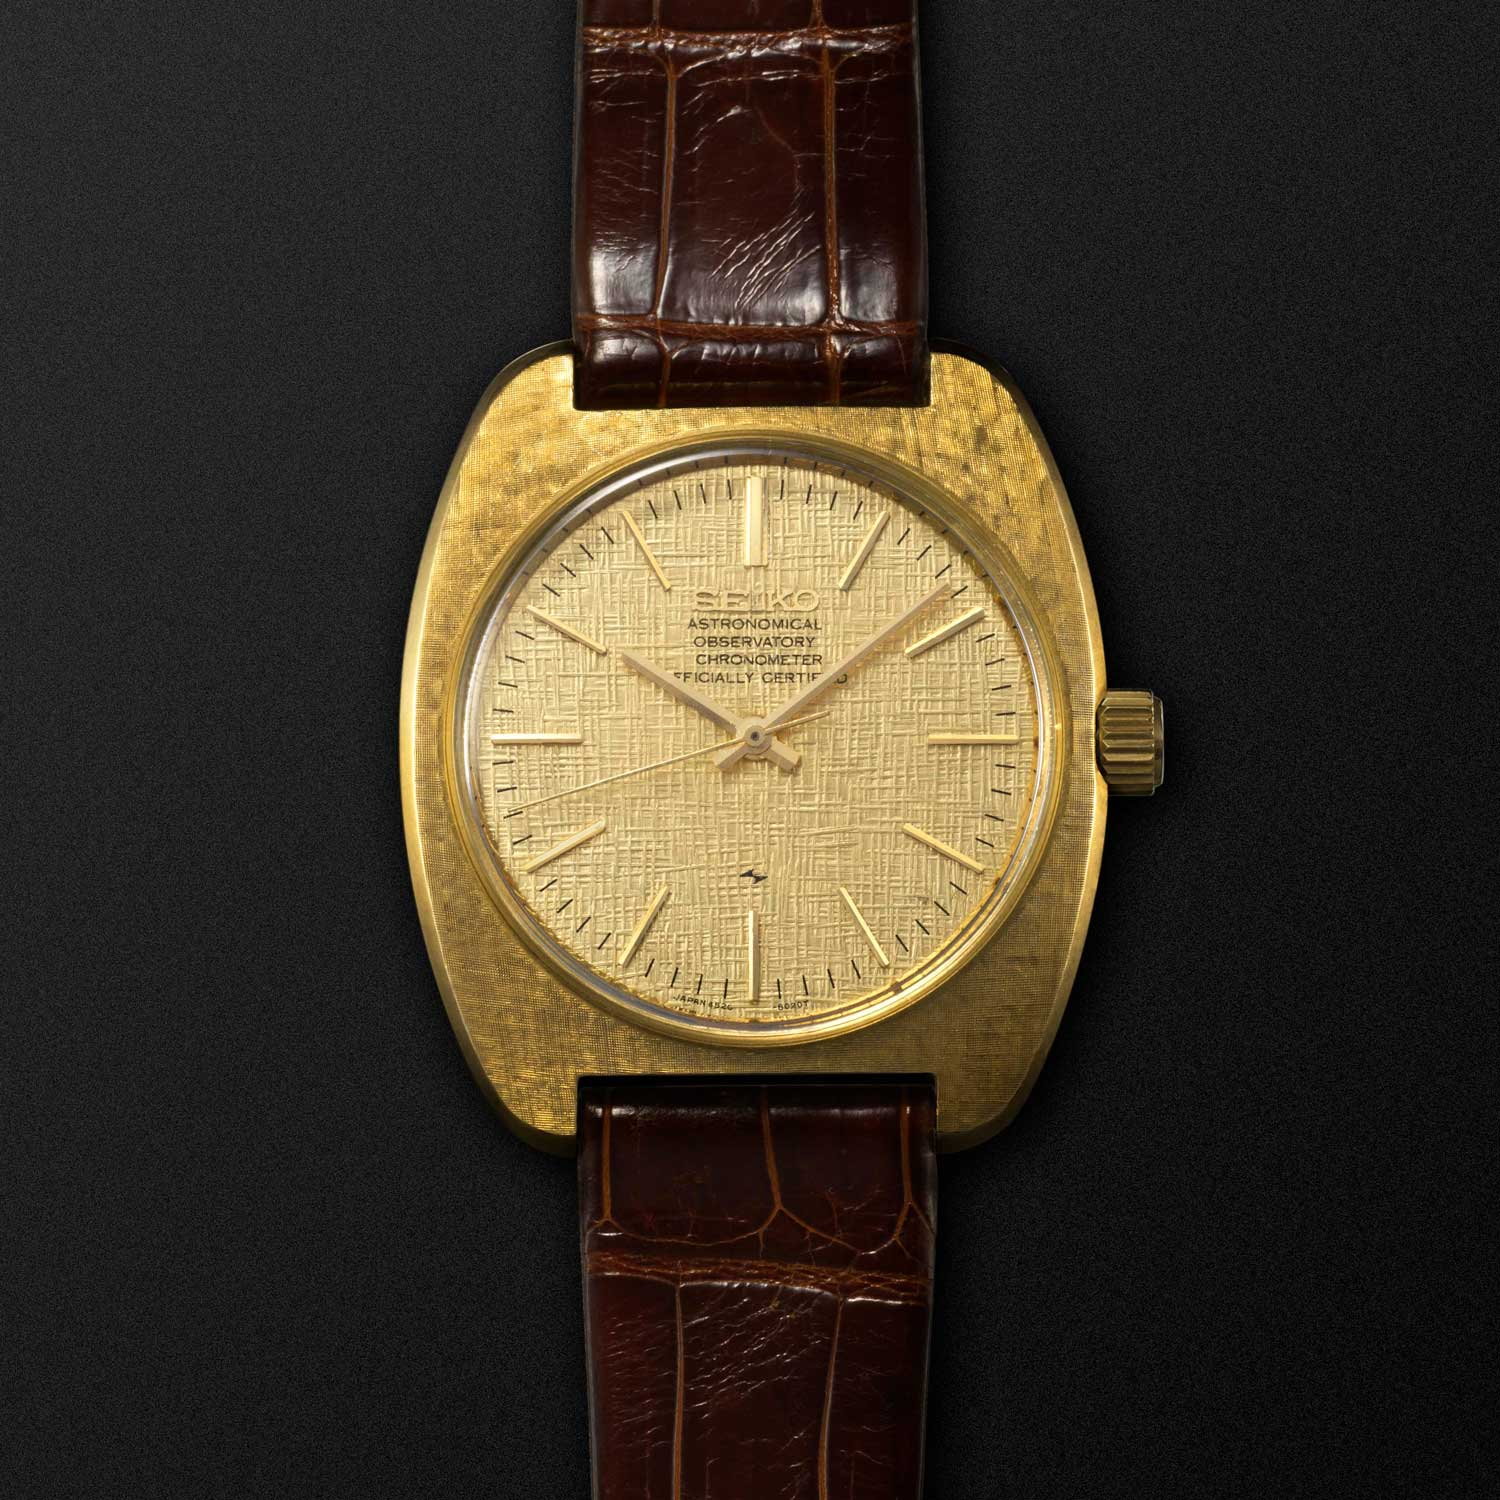 The 1969 Astronomical Observatory Chronometer fitted with the cal. 4520 (Image: Grand Seiko)